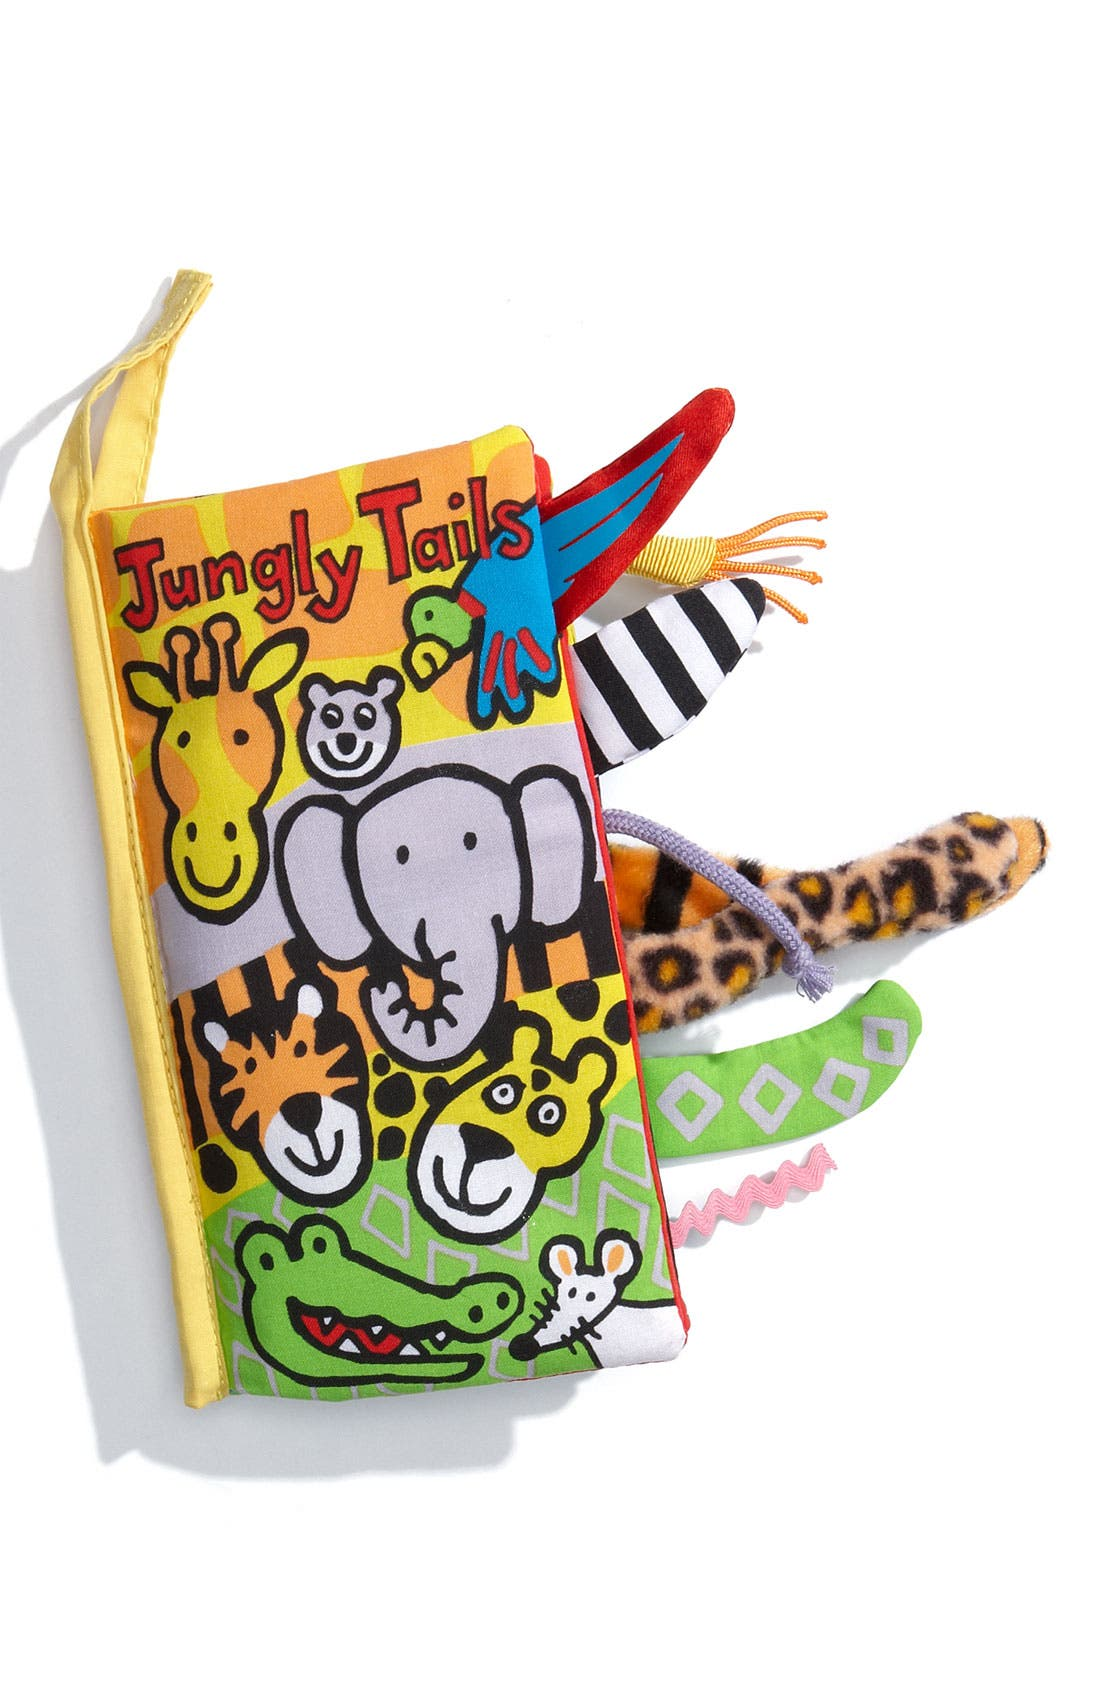 Main Image - 'Jungly Tails' Cloth Book